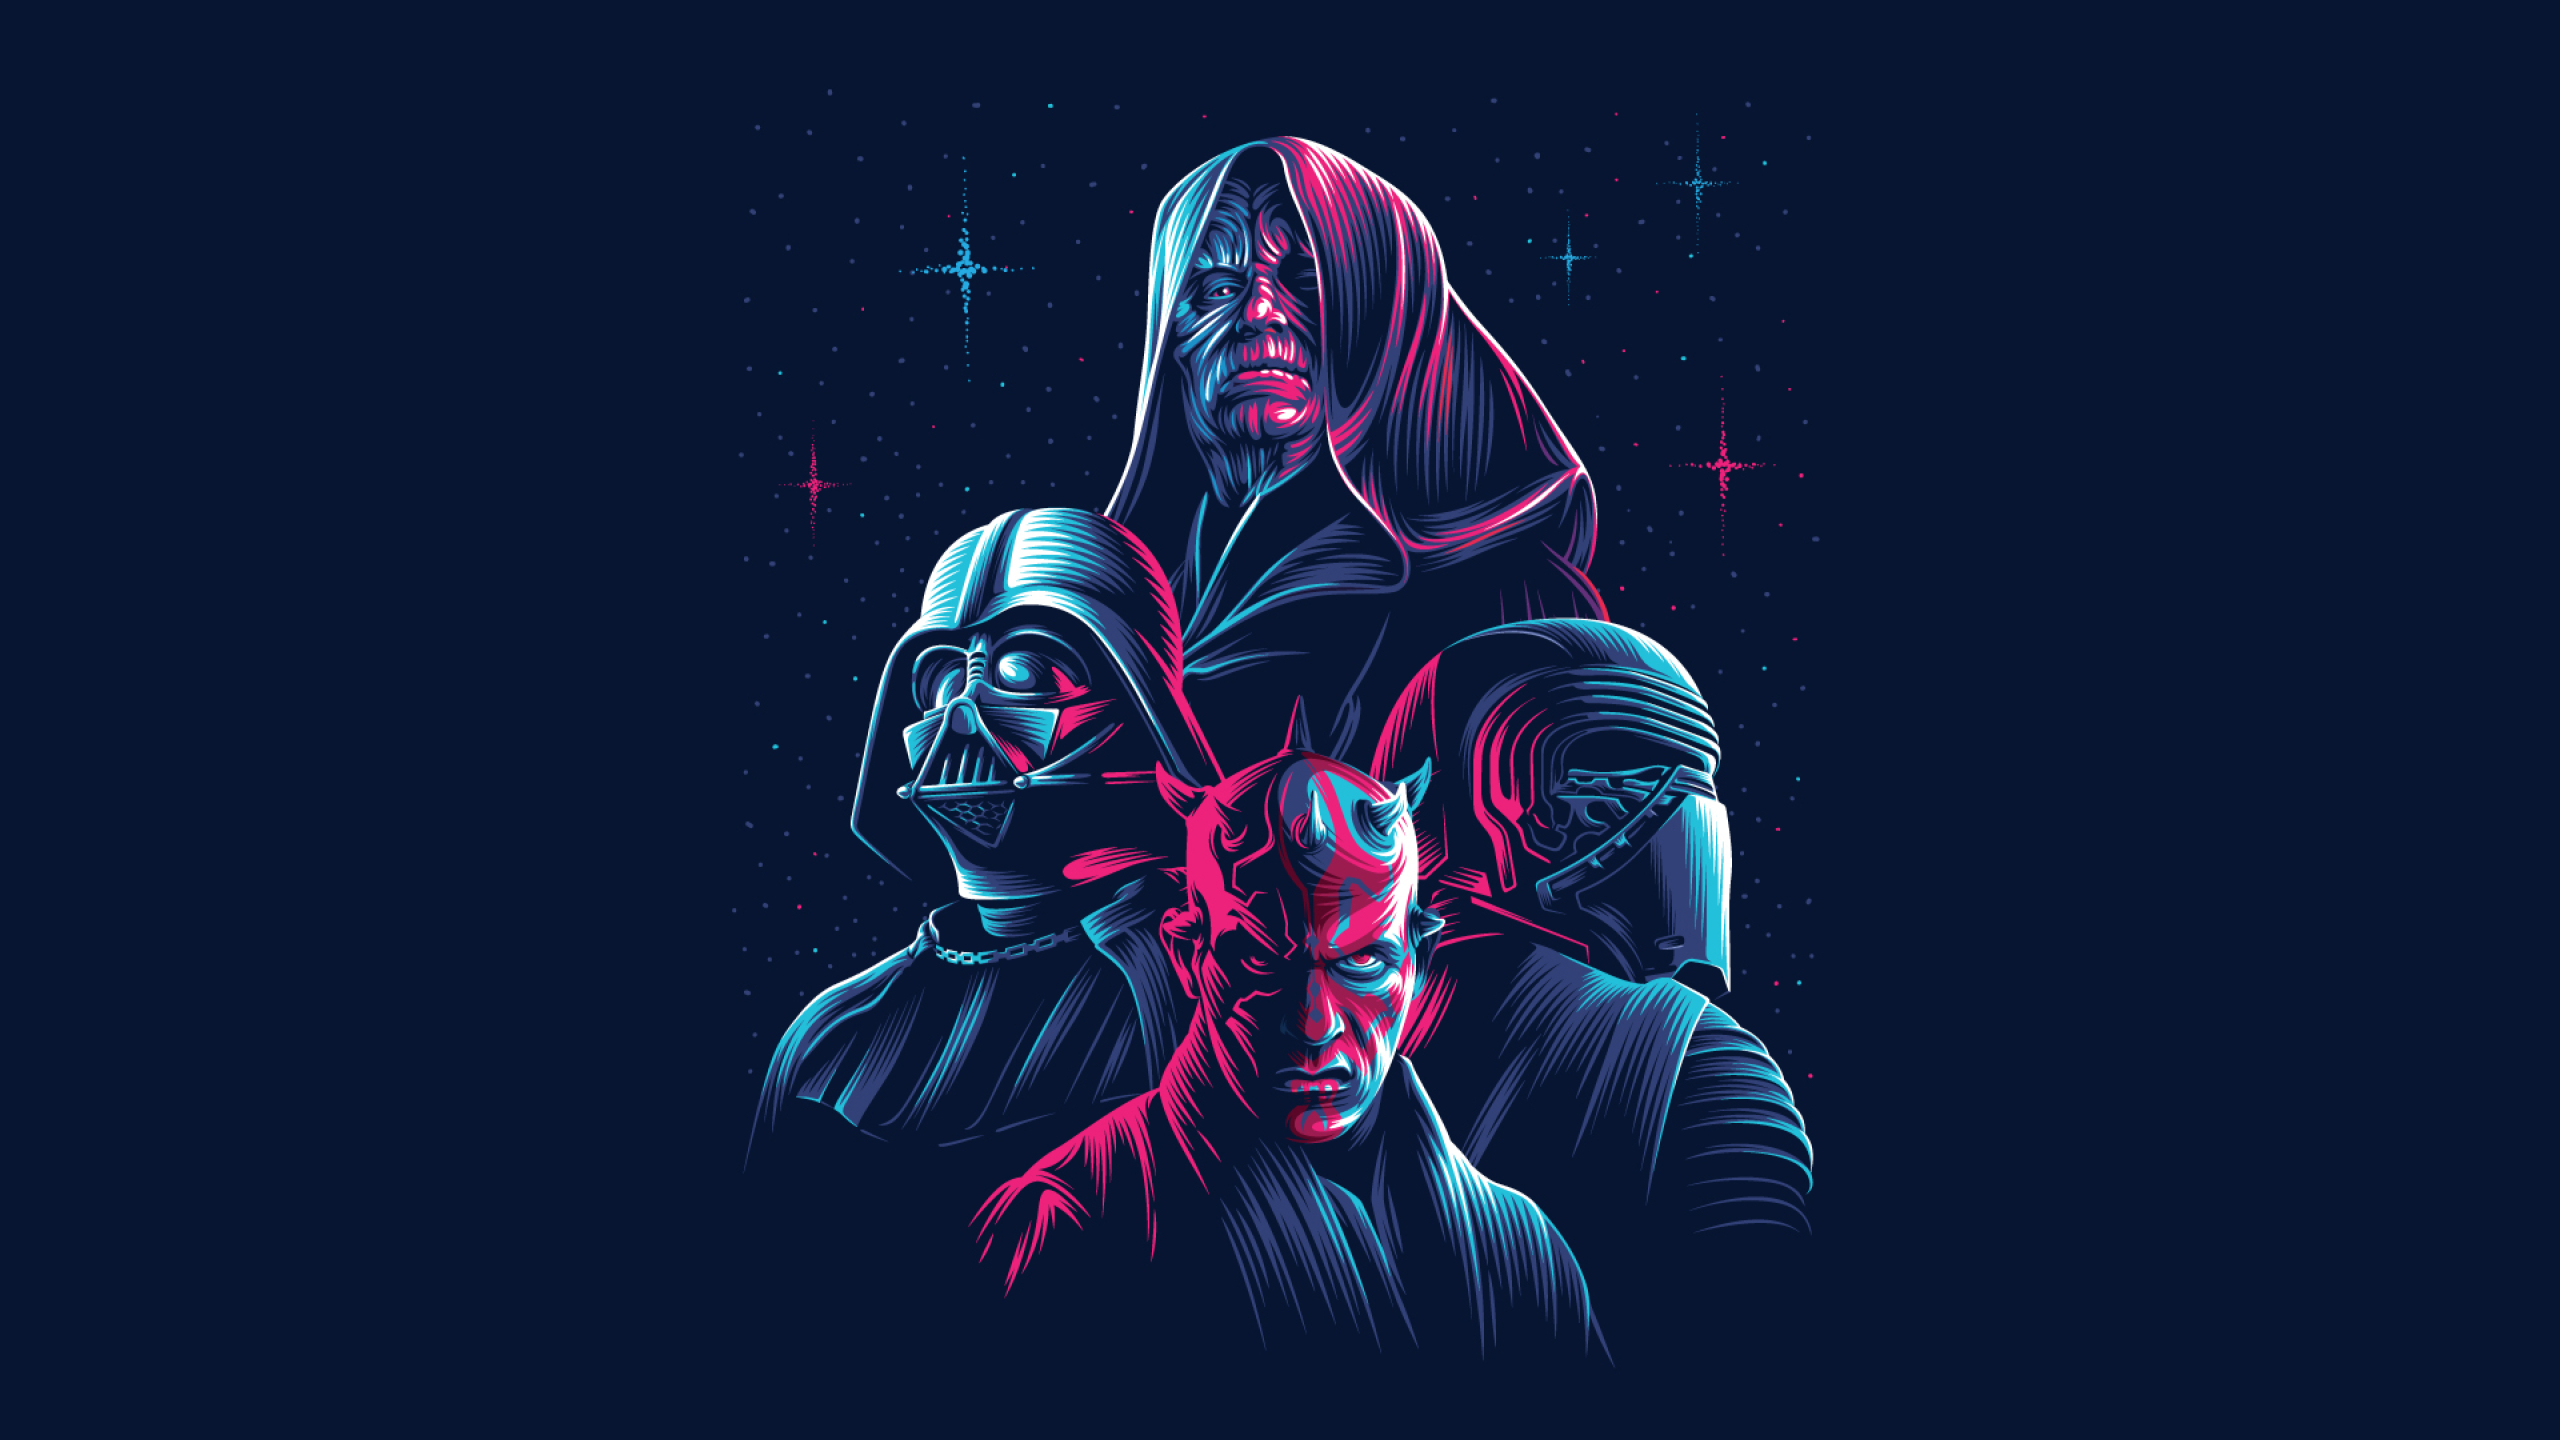 star wars dark side bGVmZ2mUmZqaraWkpJRnamtlrWZpaWU